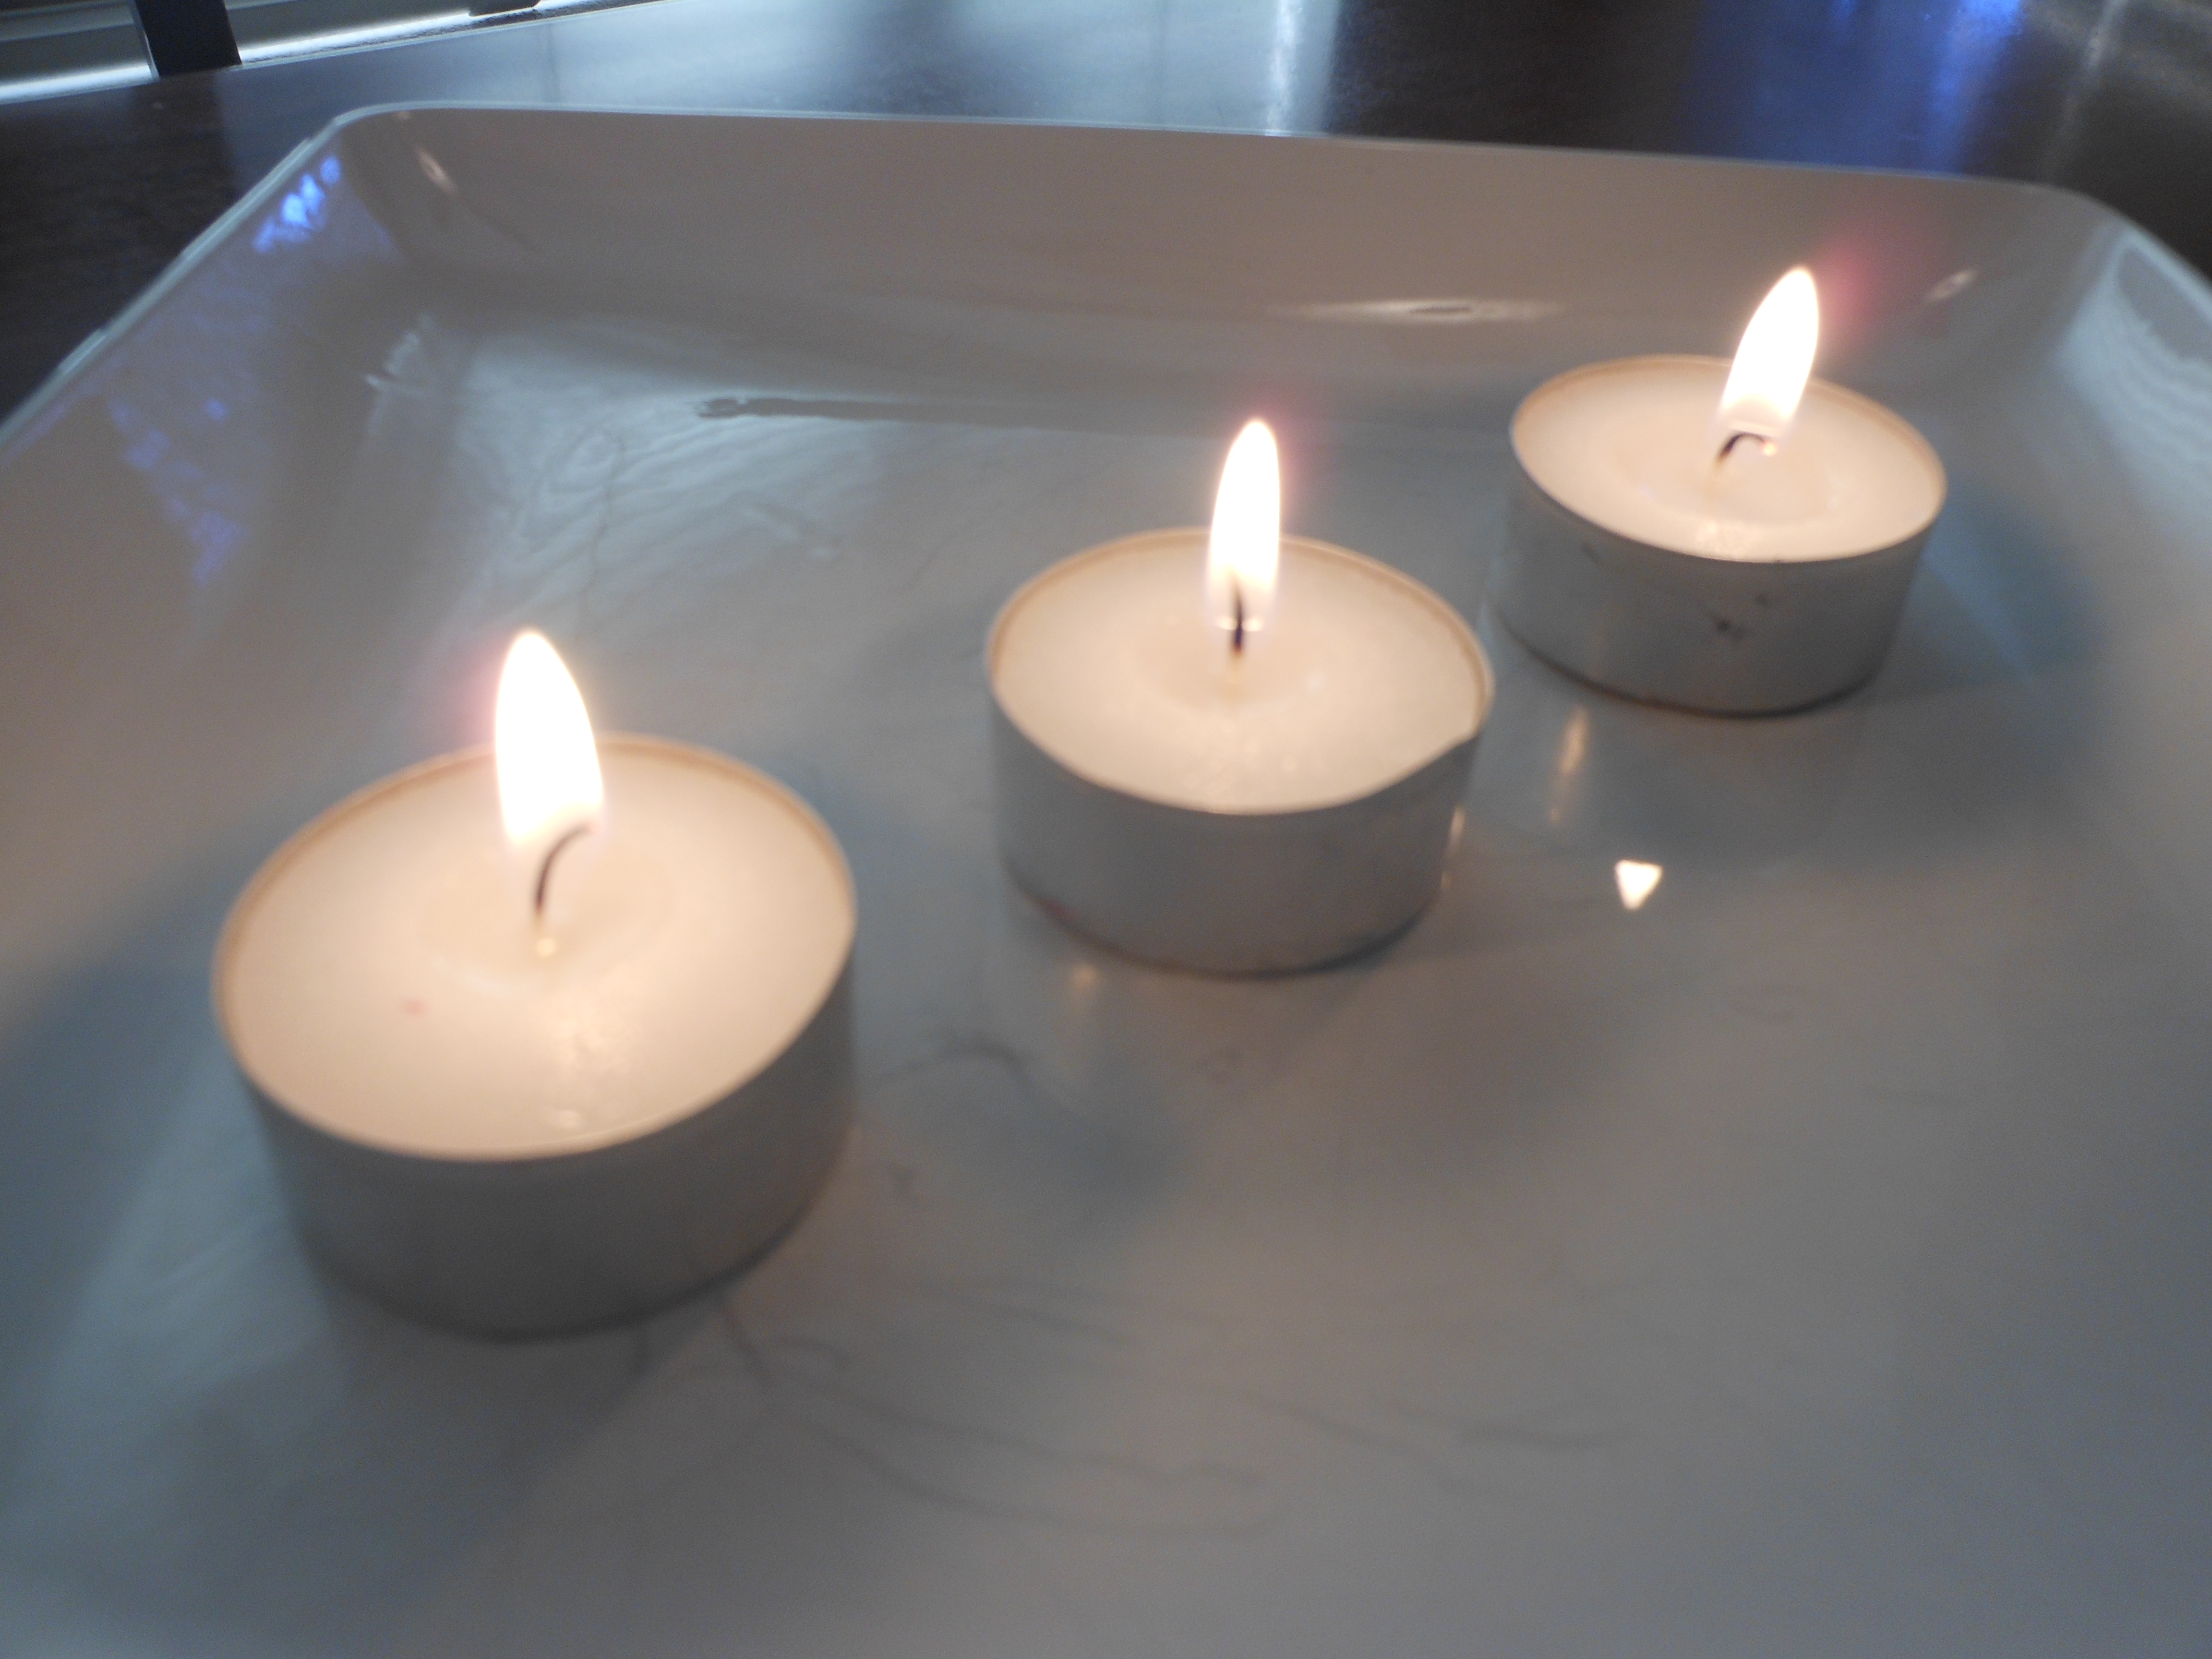 Easy science experiments for kids using candles